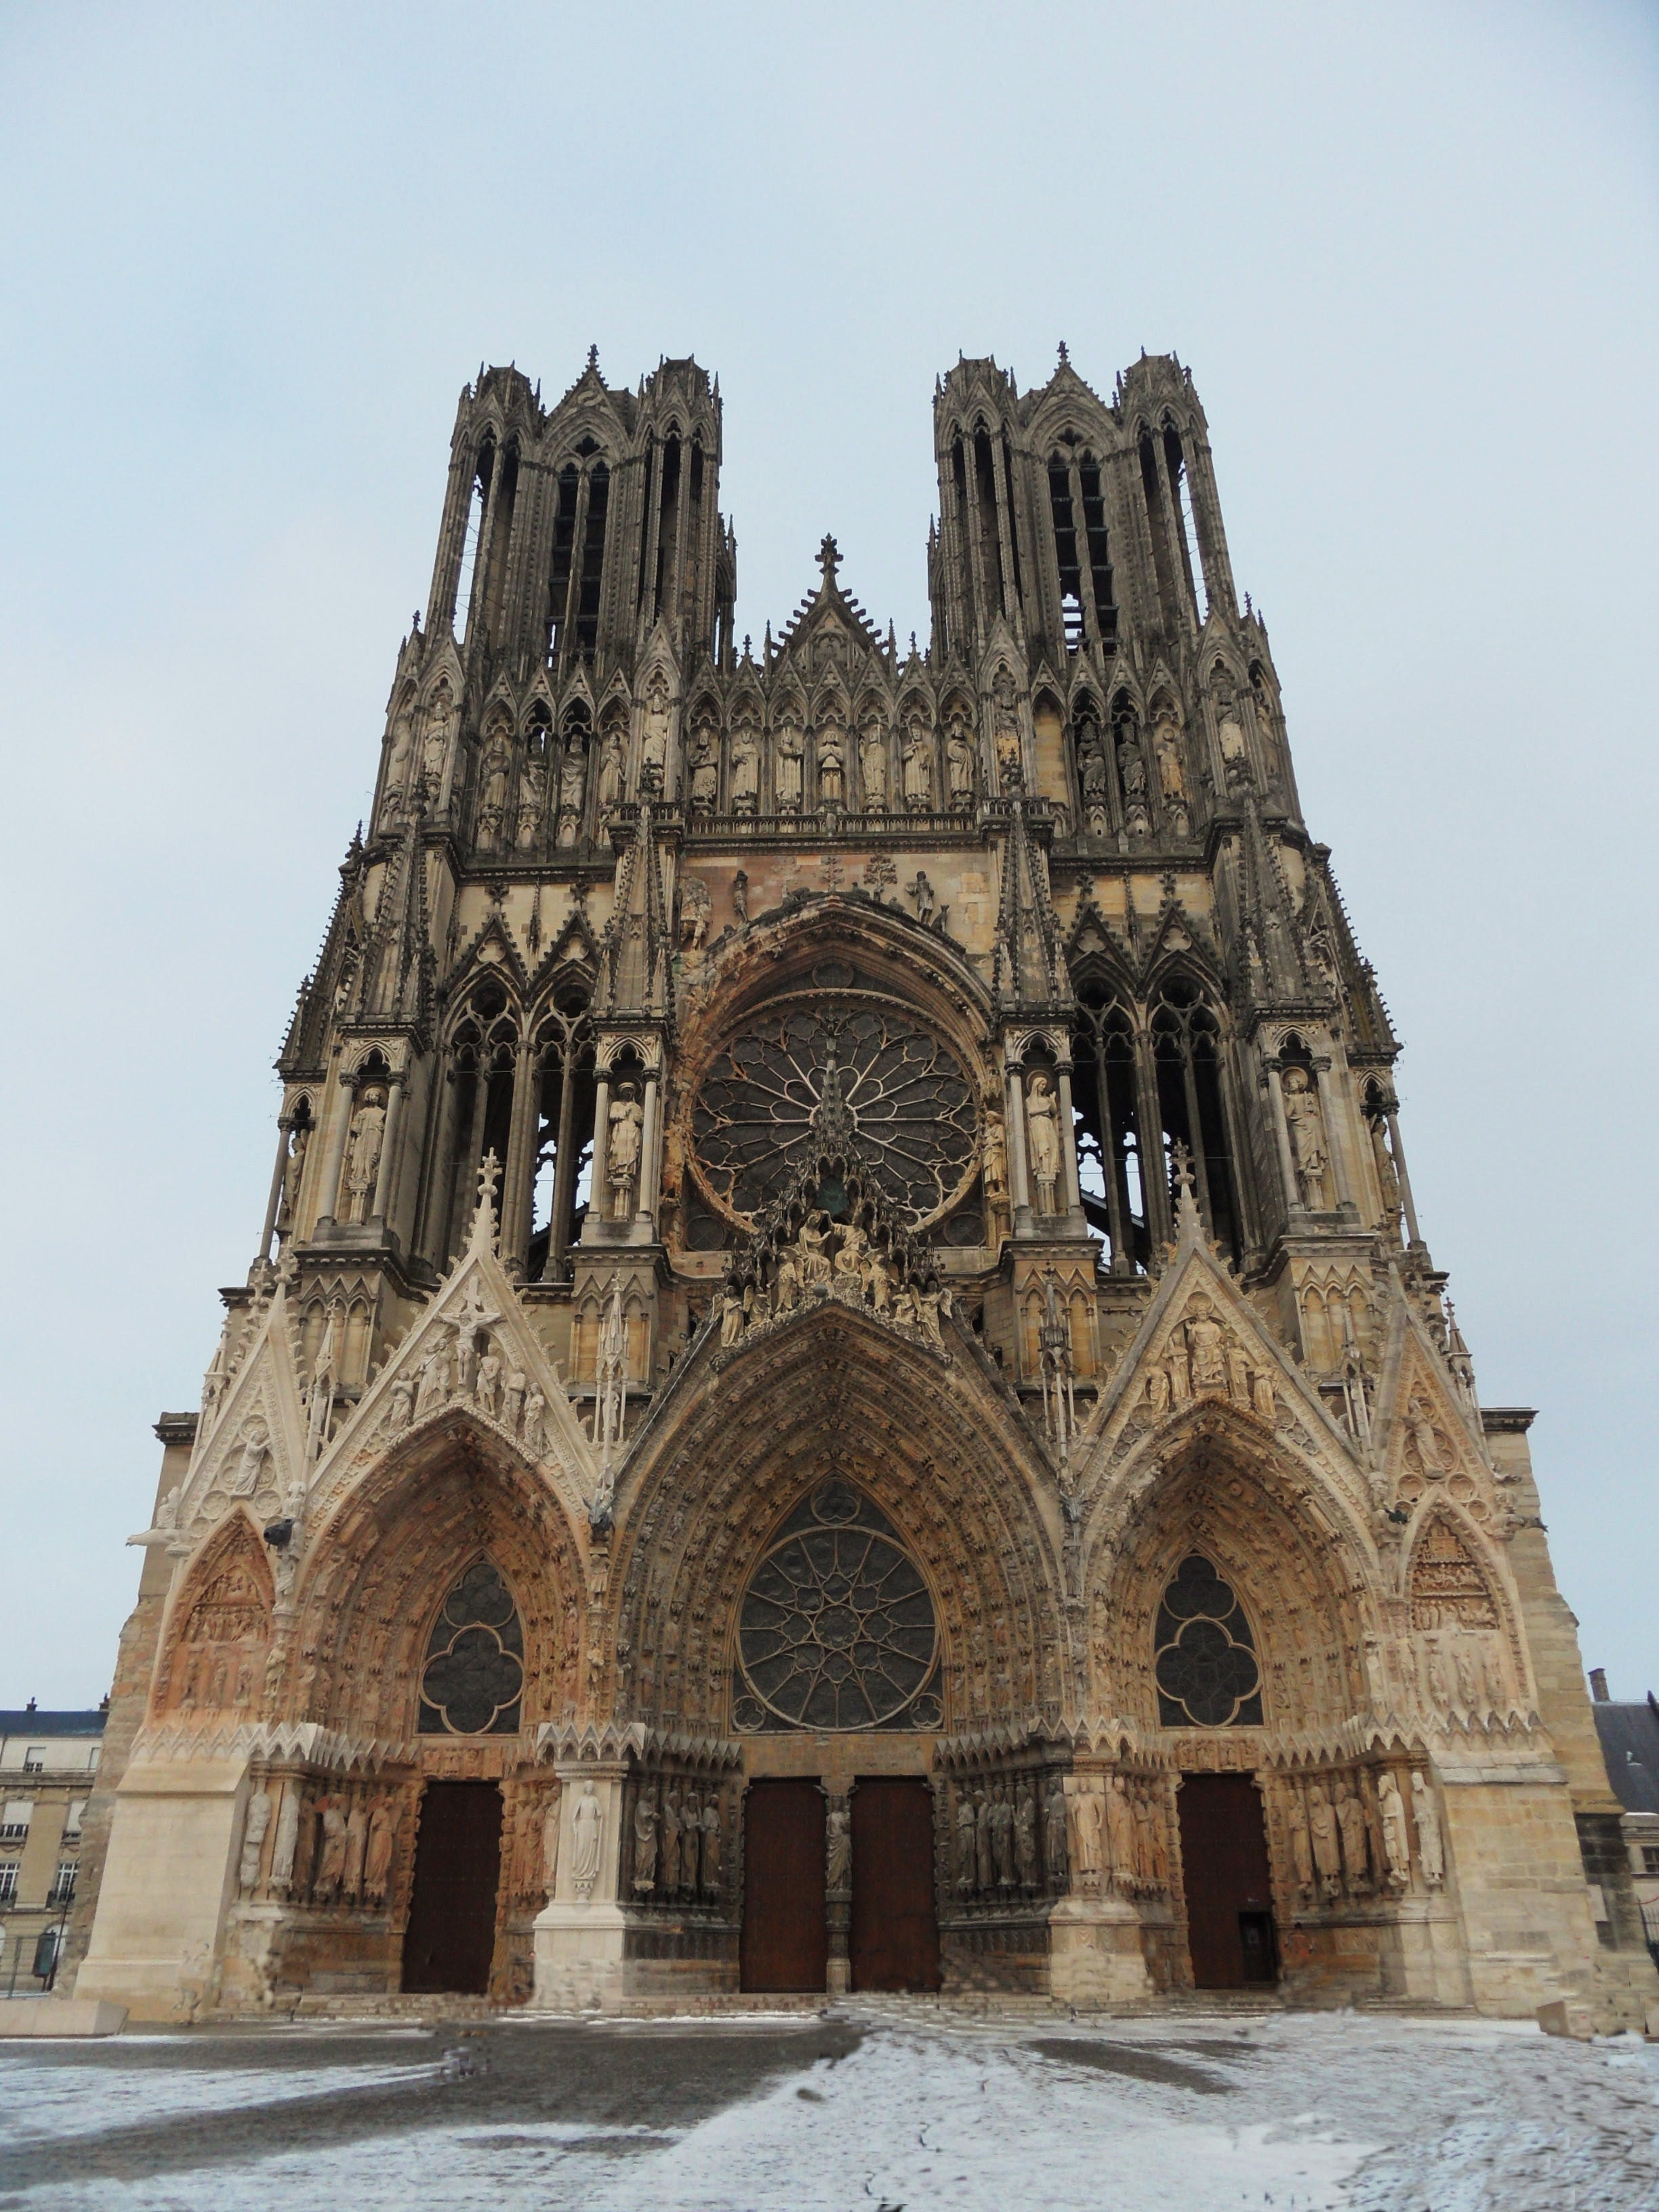 Historia antigua en Catedral de Reims